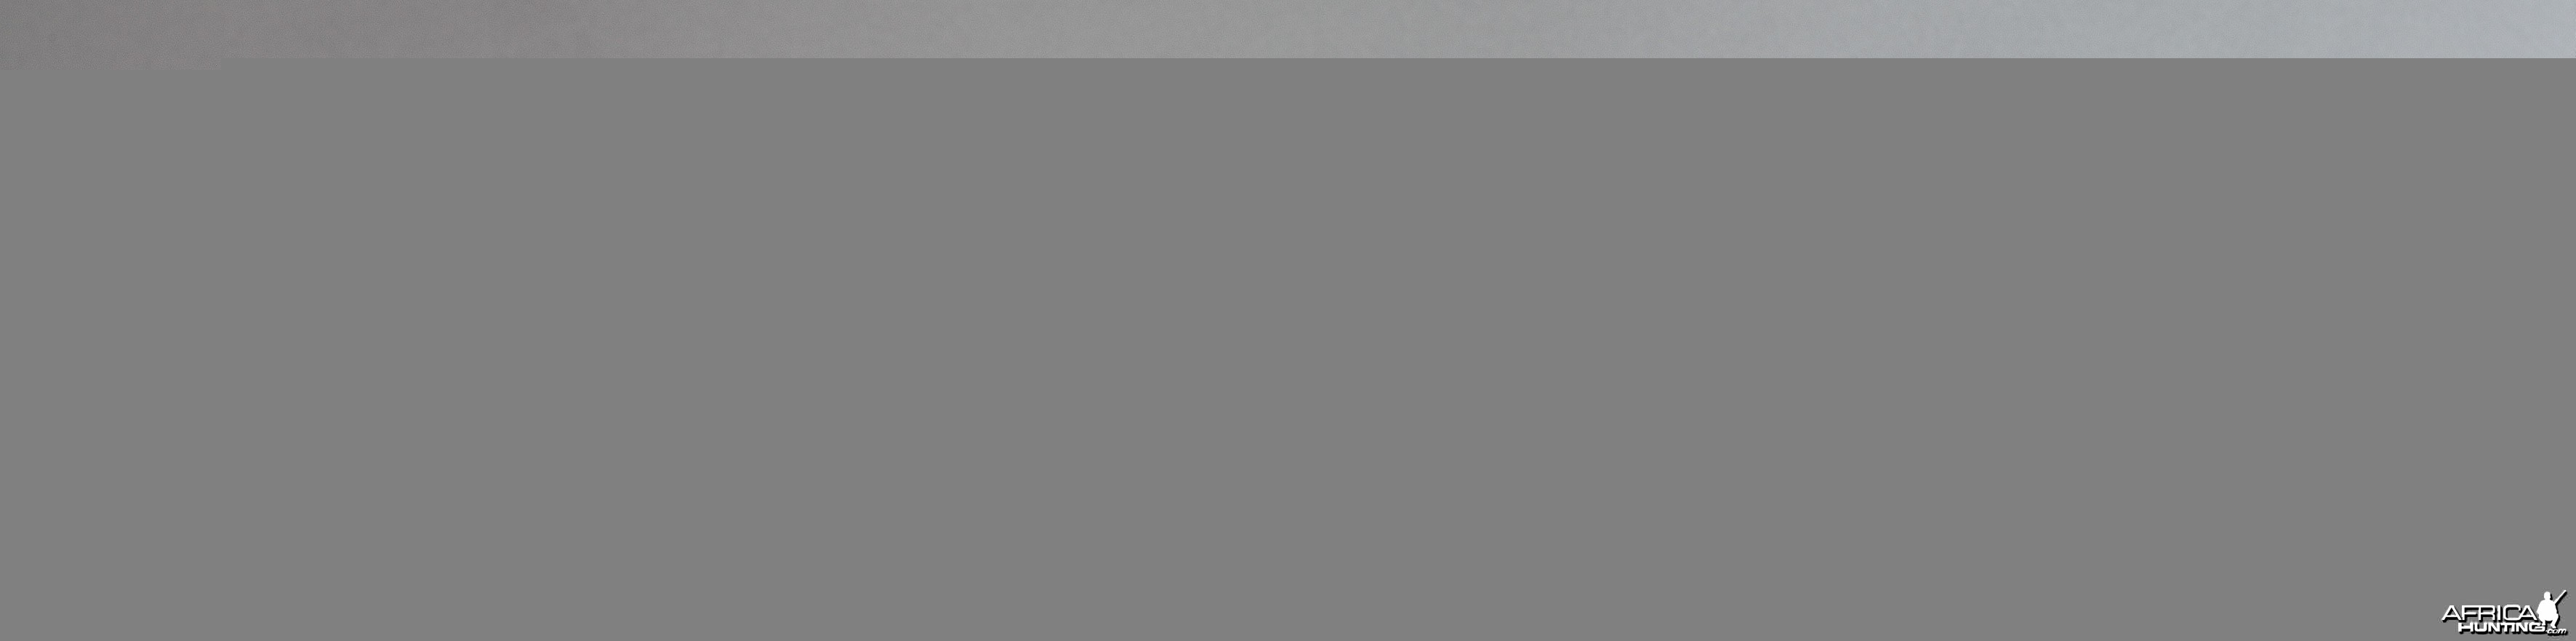 Azur Safari Eloge Double Rifle by Verney-Carron with Buffalo Engraving